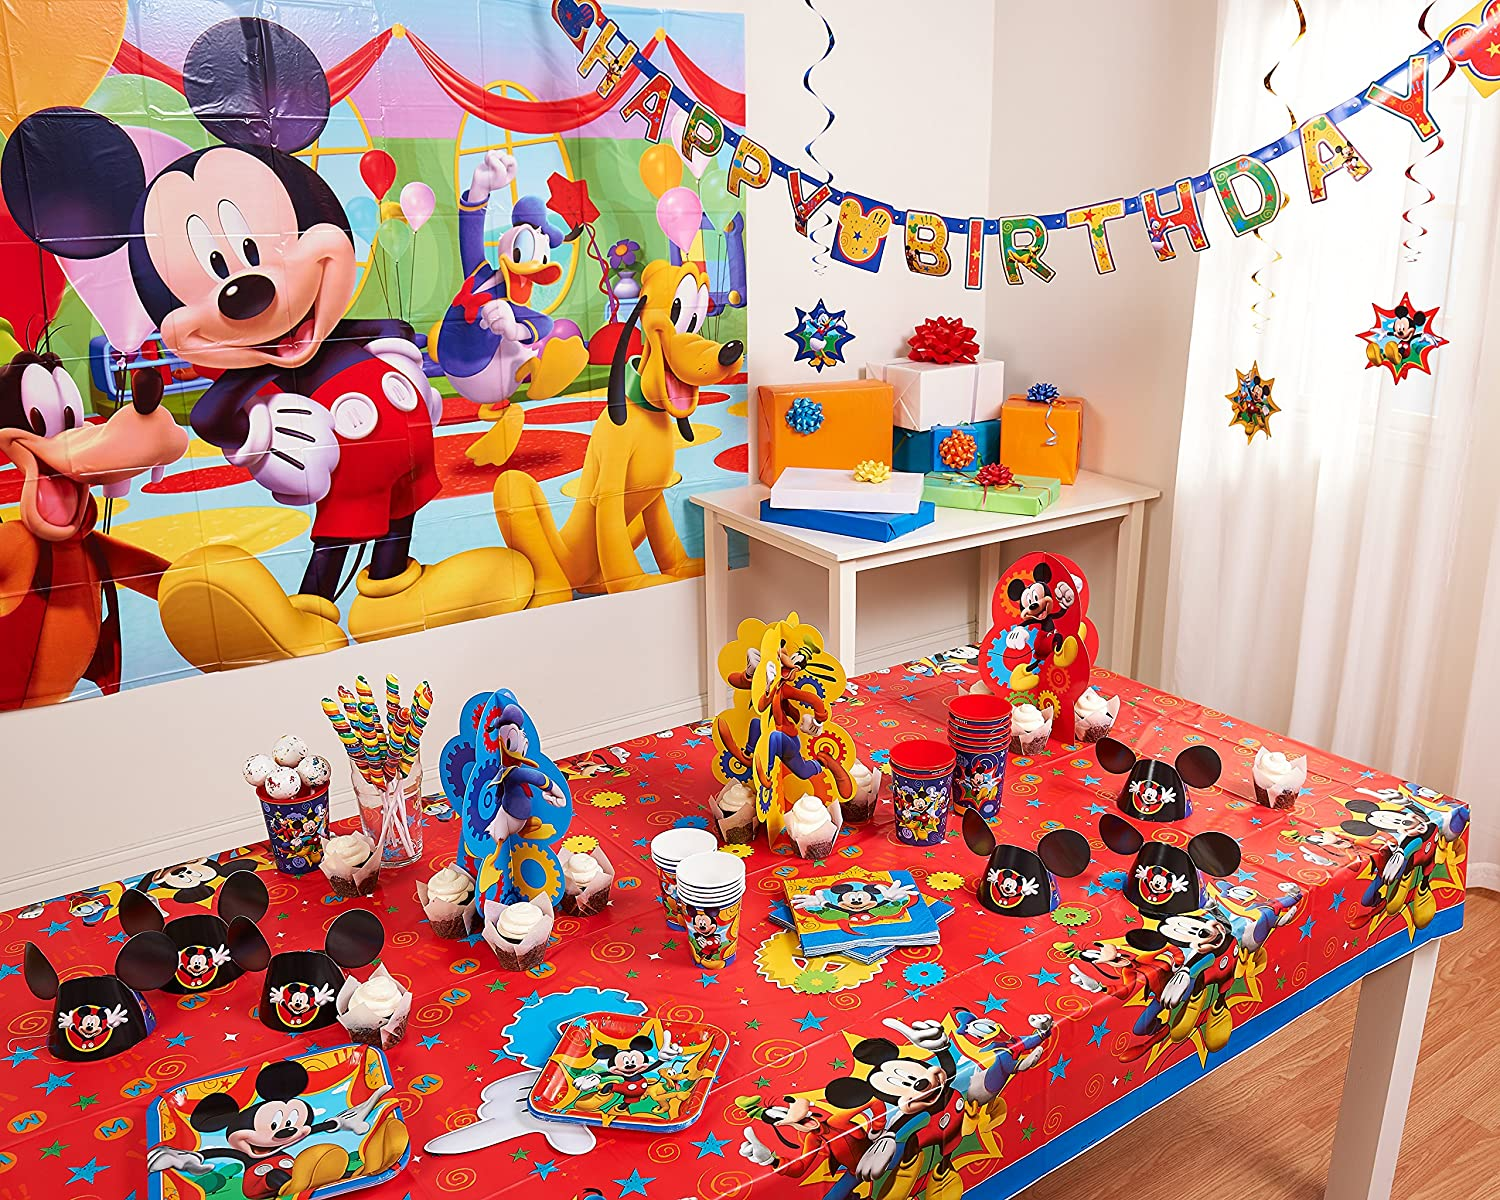 Amazon chima party supplies - Amazon Com Mickey Mouse Clubhouse Party Hat Mickey Ears 8 Count Party Supplies Toys Games